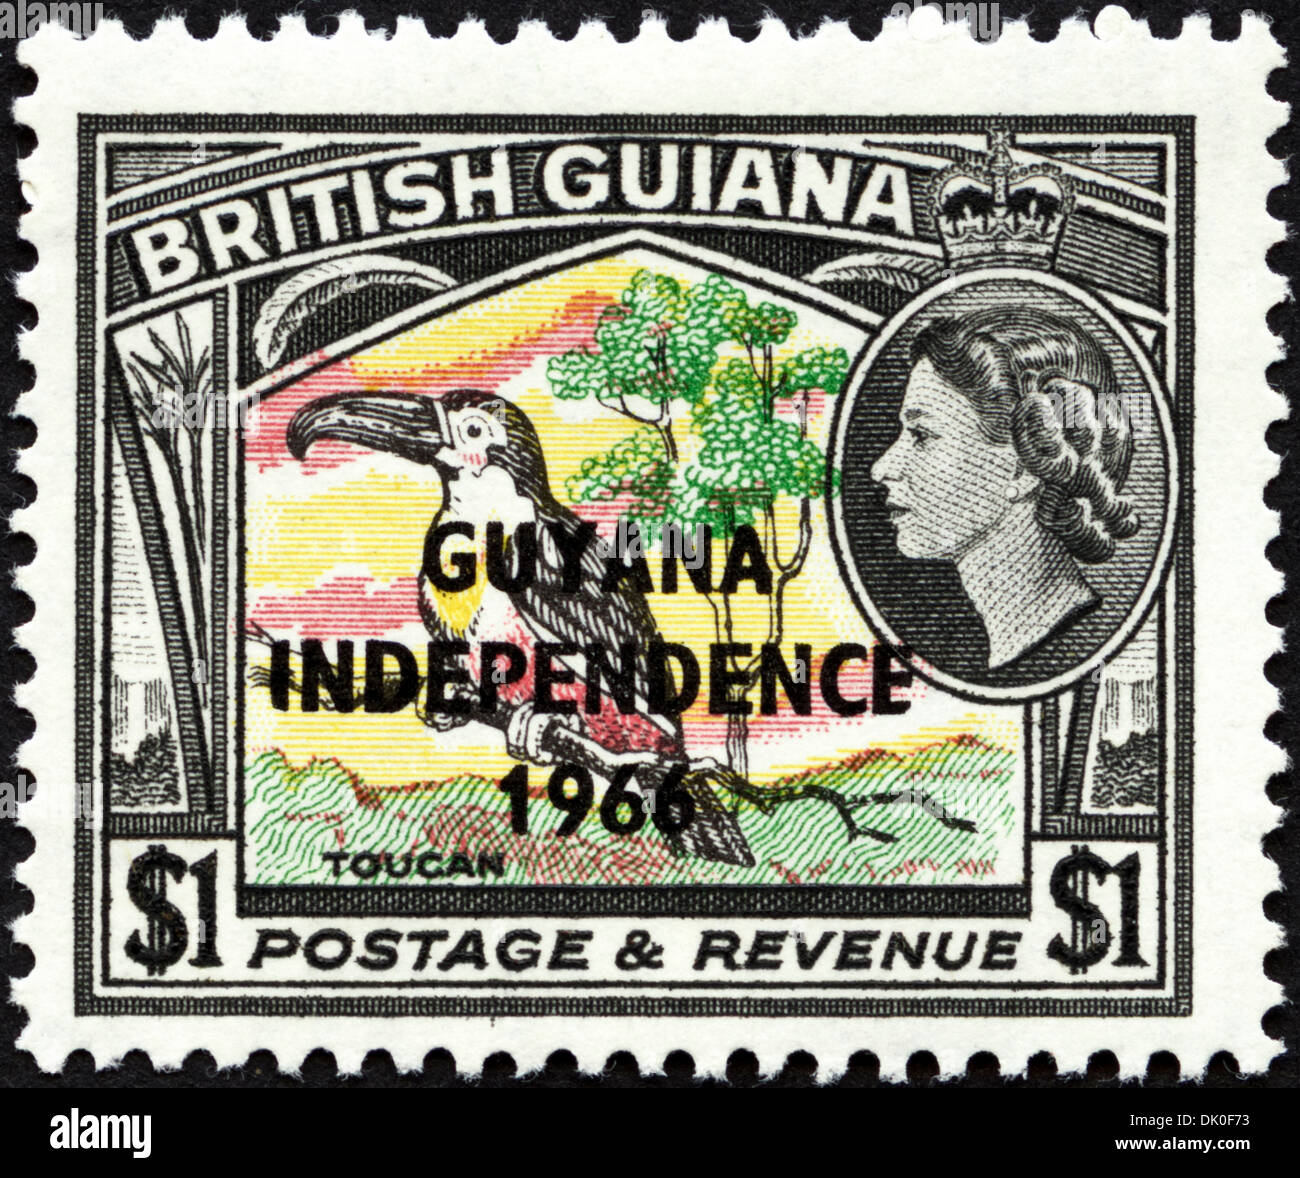 postage stamp British Guiana $1 featuring Toucan overstamped with Guyana Independence 1966 issued 1966 - Stock Image